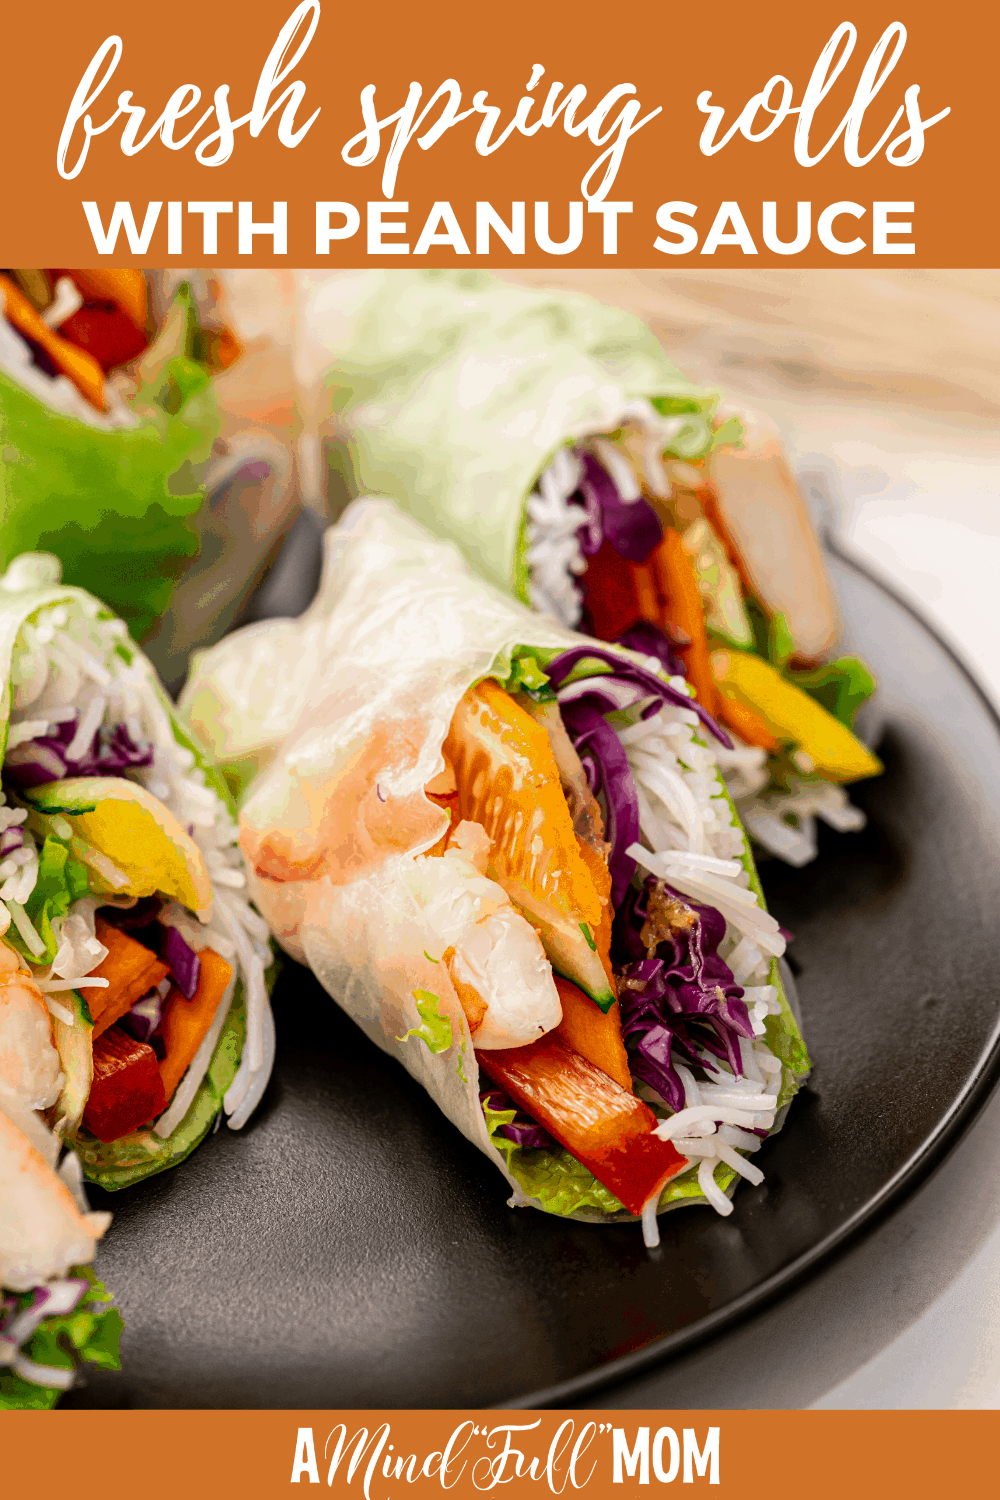 Made with shrimp, fresh vegetables, sweet mangoes, and a delicious peanut dipping sauce, these Vietnamese Spring Rolls are fresh and light instead of being deep-fried and heavy.